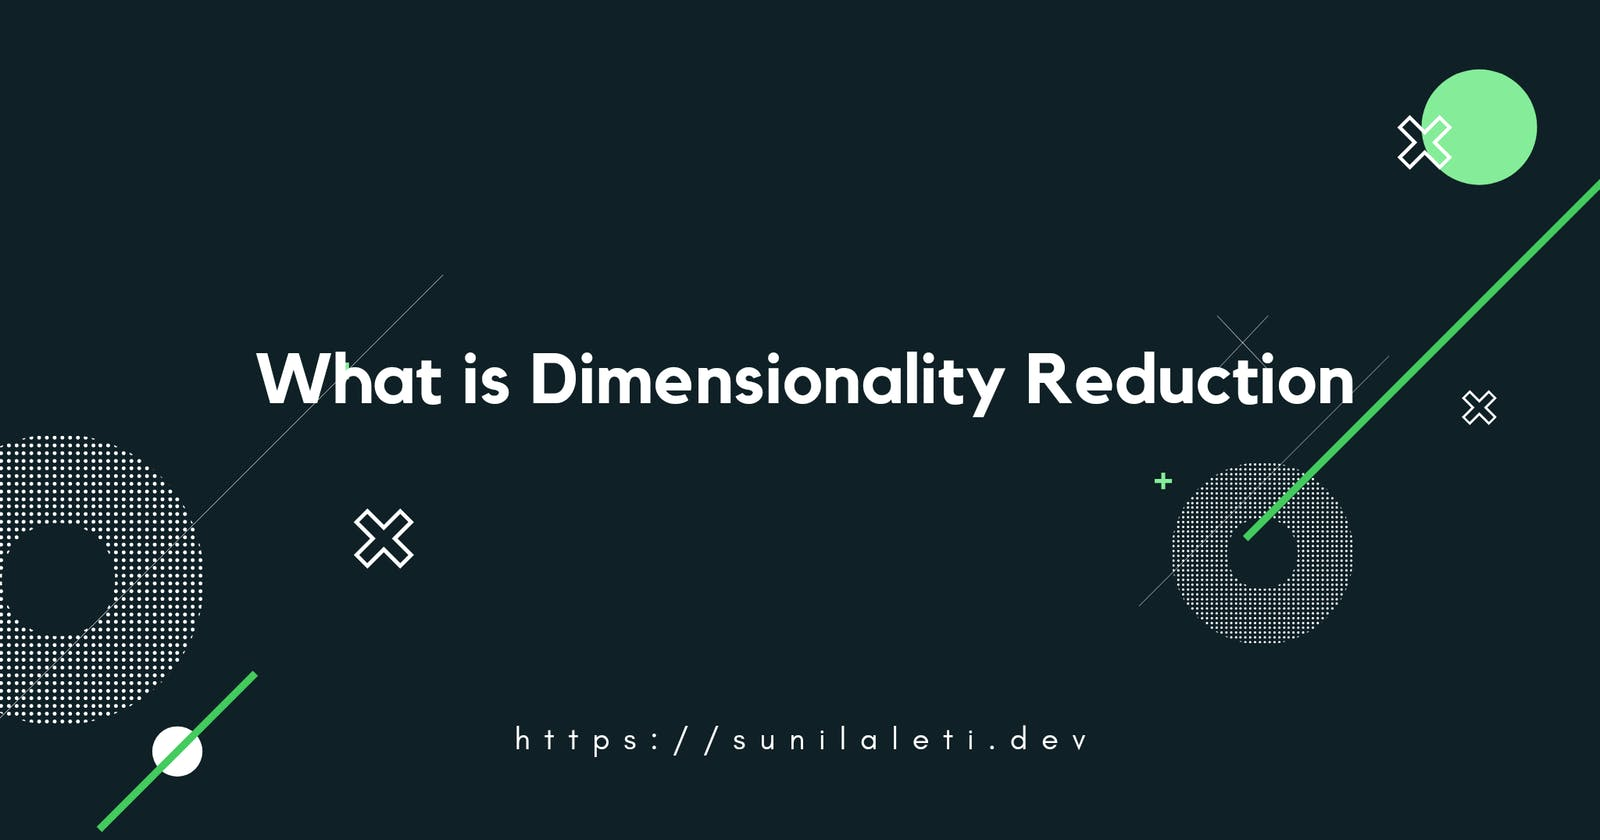 What is Dimensionality Reduction?